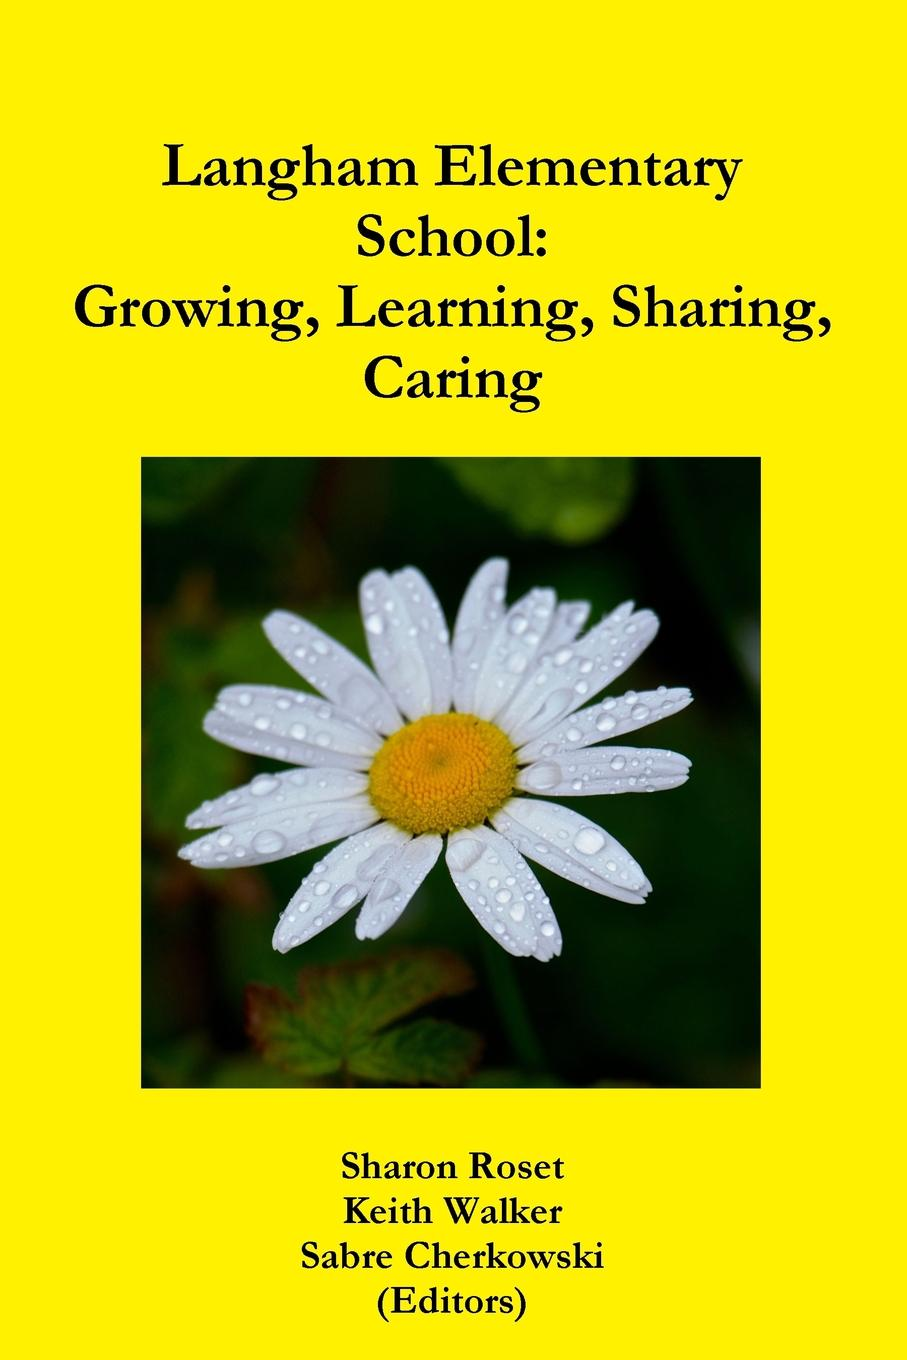 Keith Walker, Sharon Roset, Sabre Cherkowski Langham Elementary School. Growing, Learning, Sharing, Caring in the division